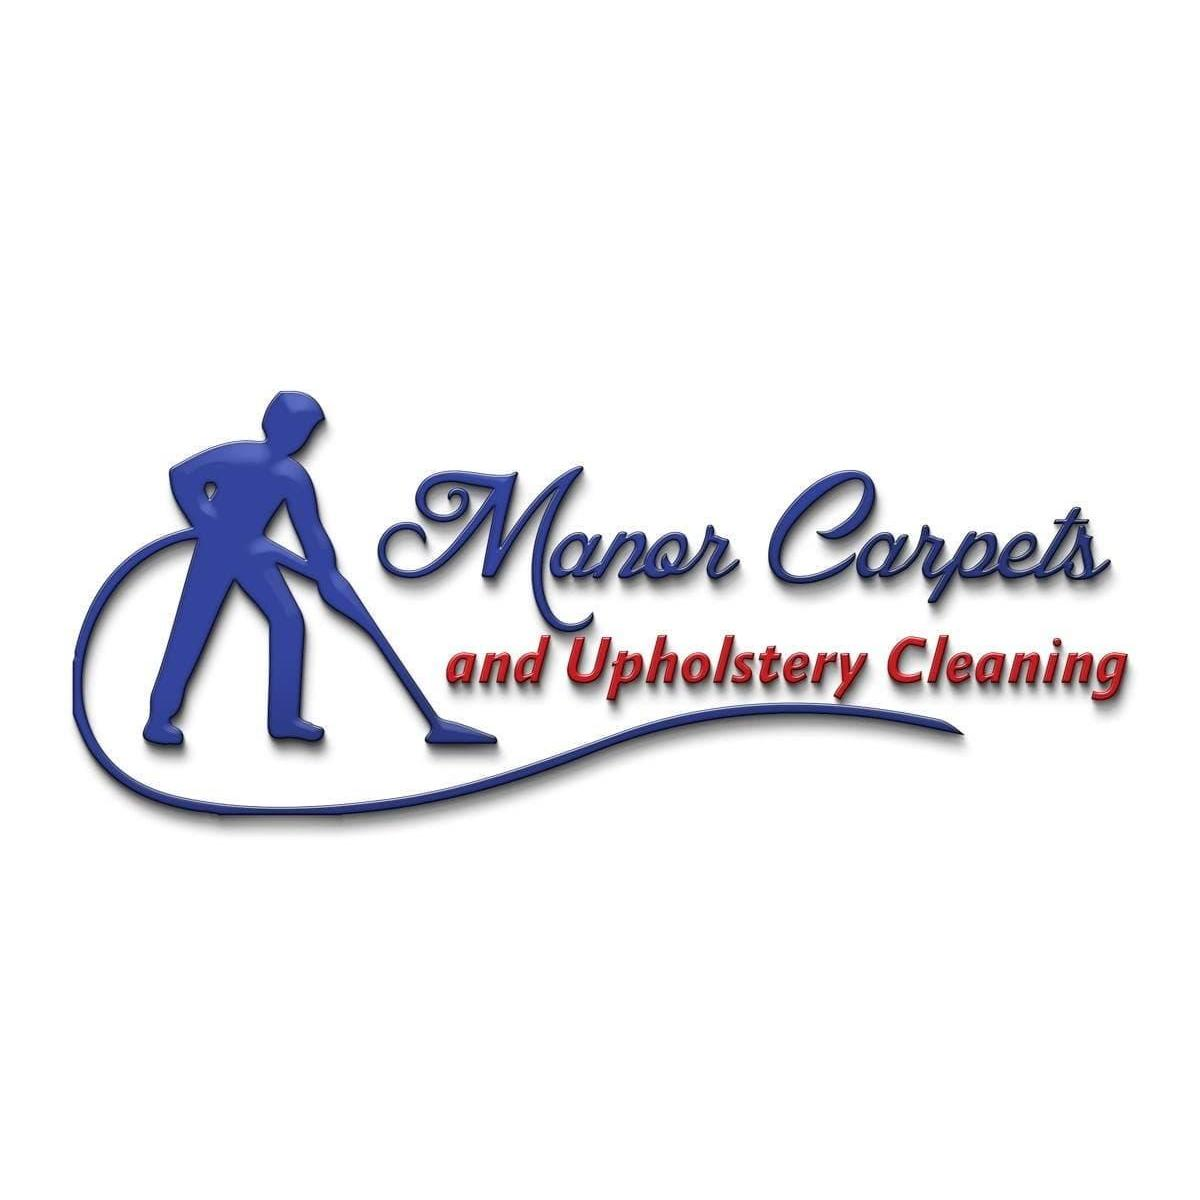 Manor House Carpet & Upholstery Cleaning